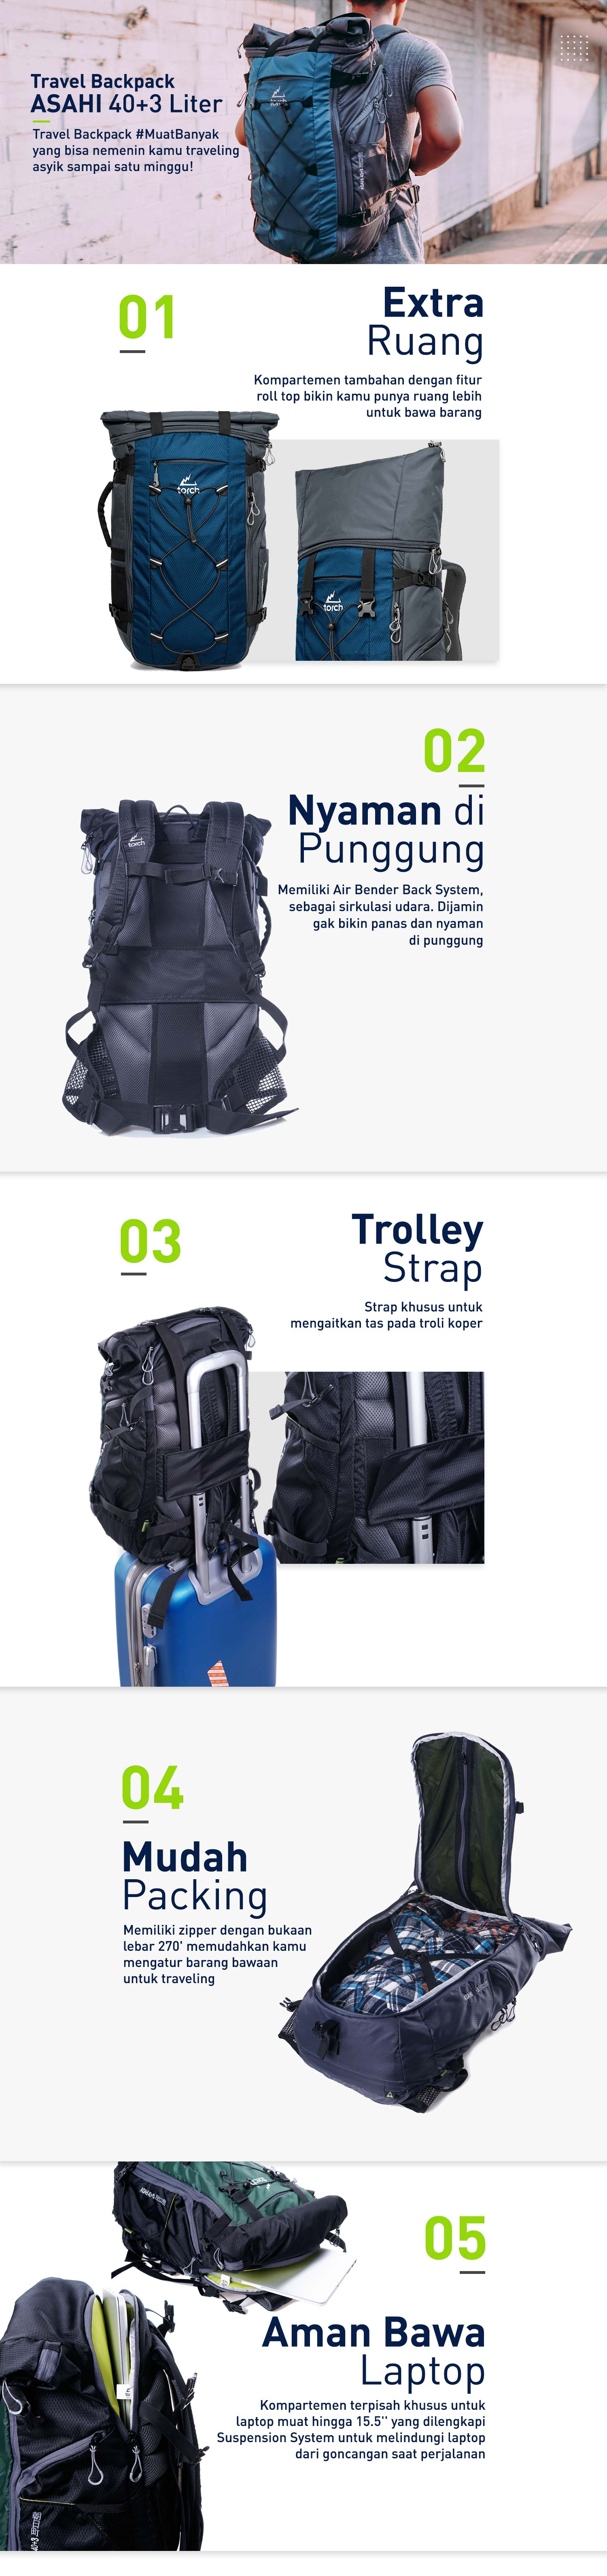 landing page travel backpack torch asahi